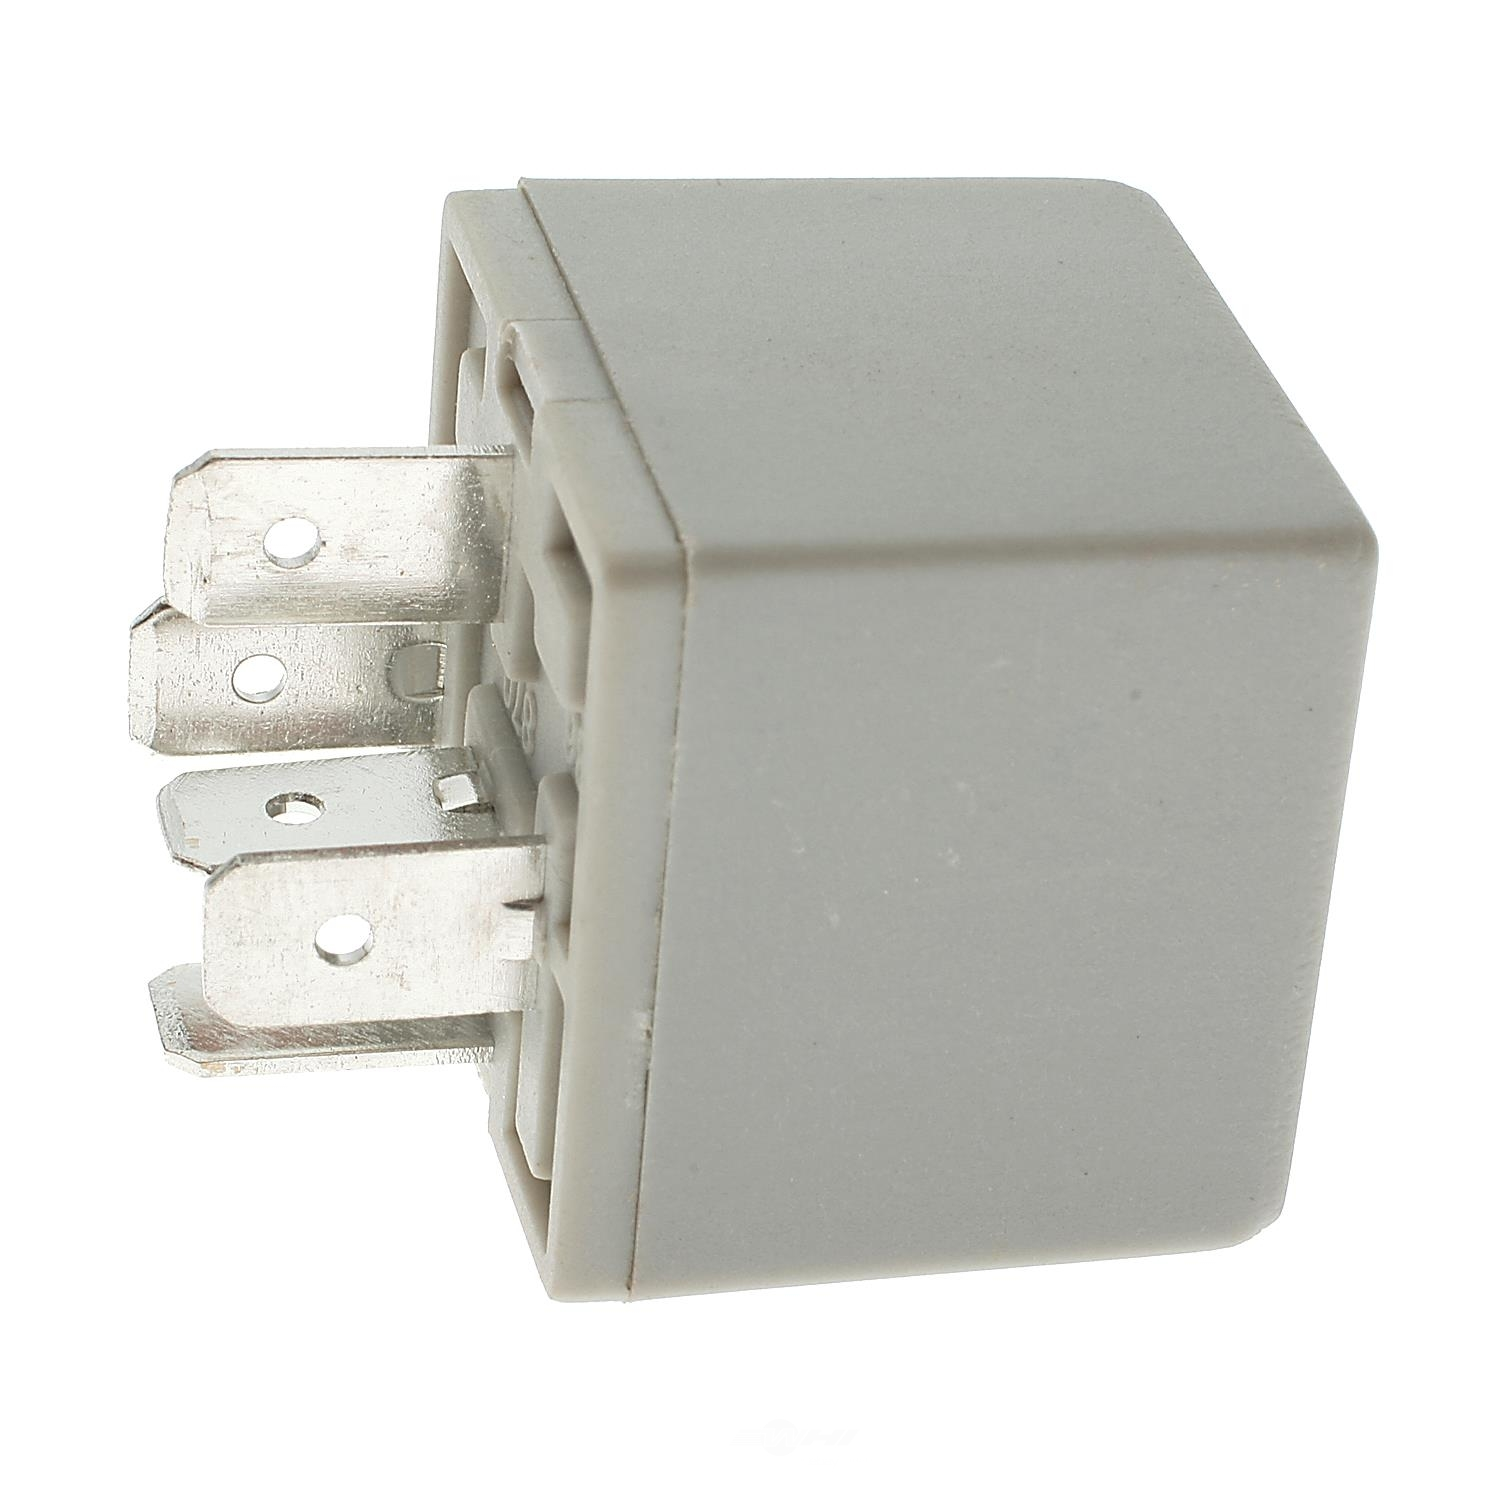 STANDARD T-SERIES - Power Window Relay - STT RY116T